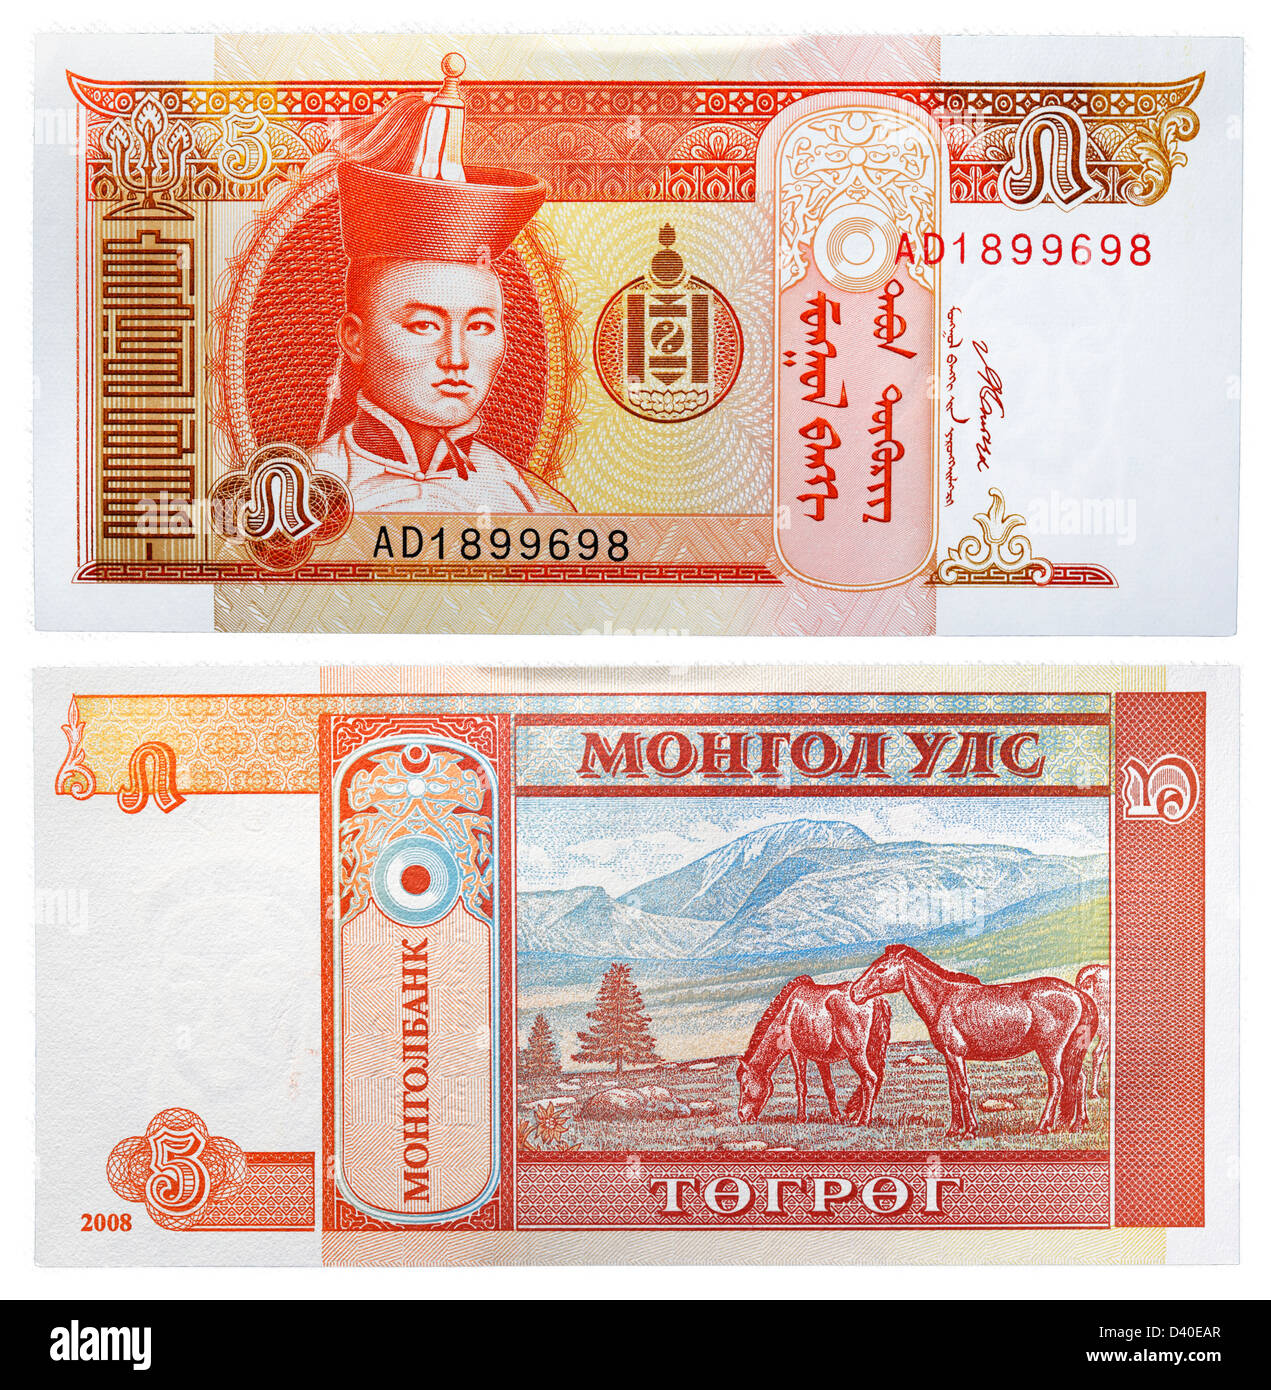 5 Tugrik, banknote, Sukhbaatar and horses in steppe, Mongolia, 2008 - Stock Image